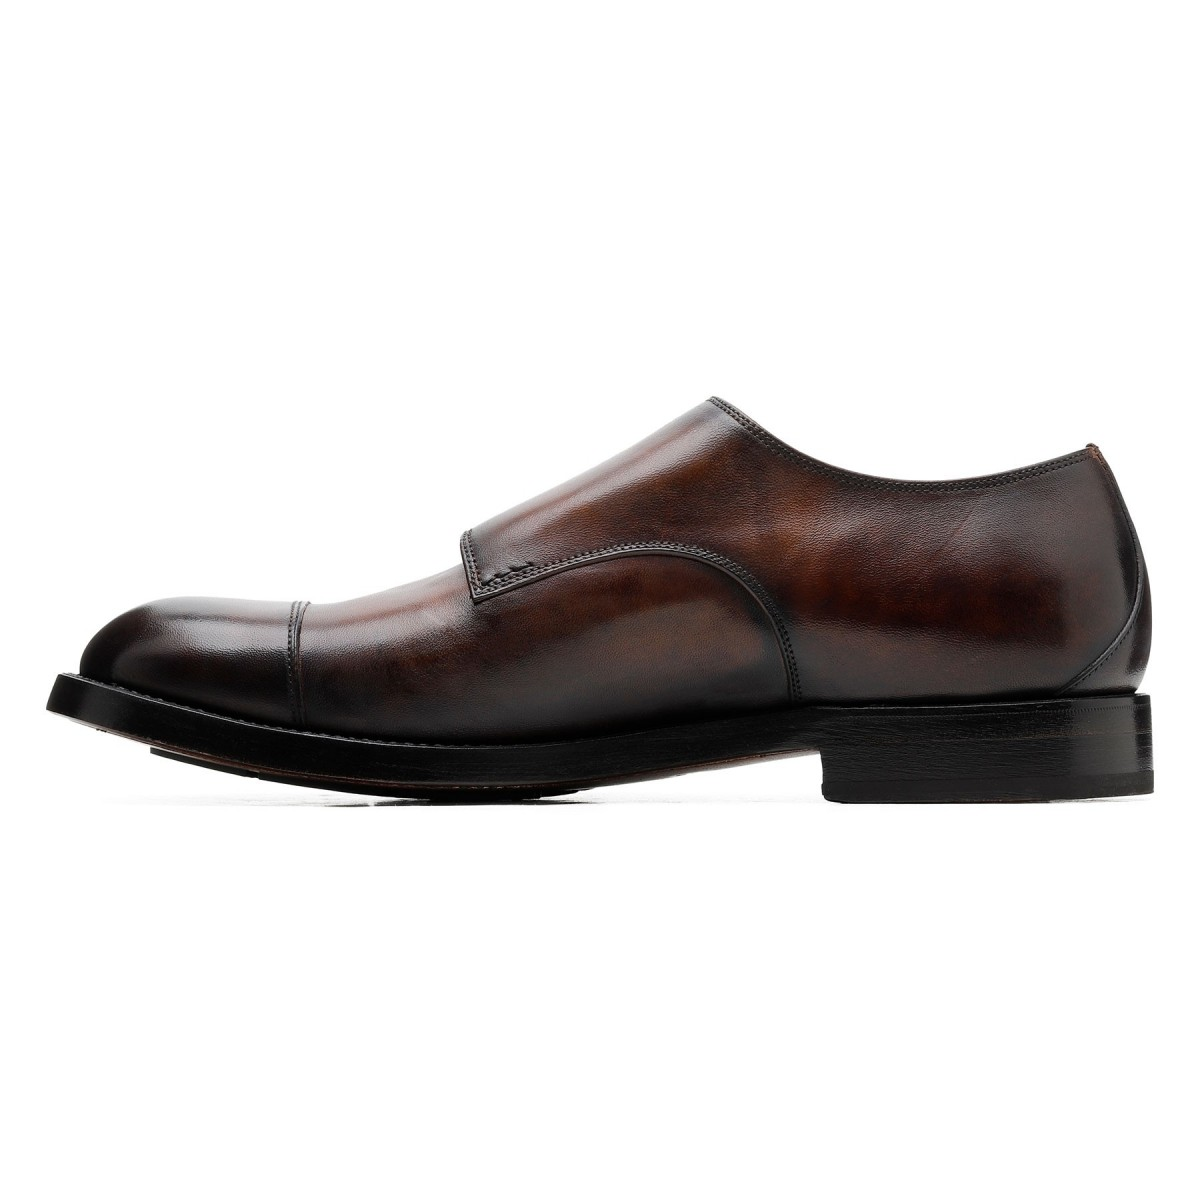 Brown leather buckled Monk shoes